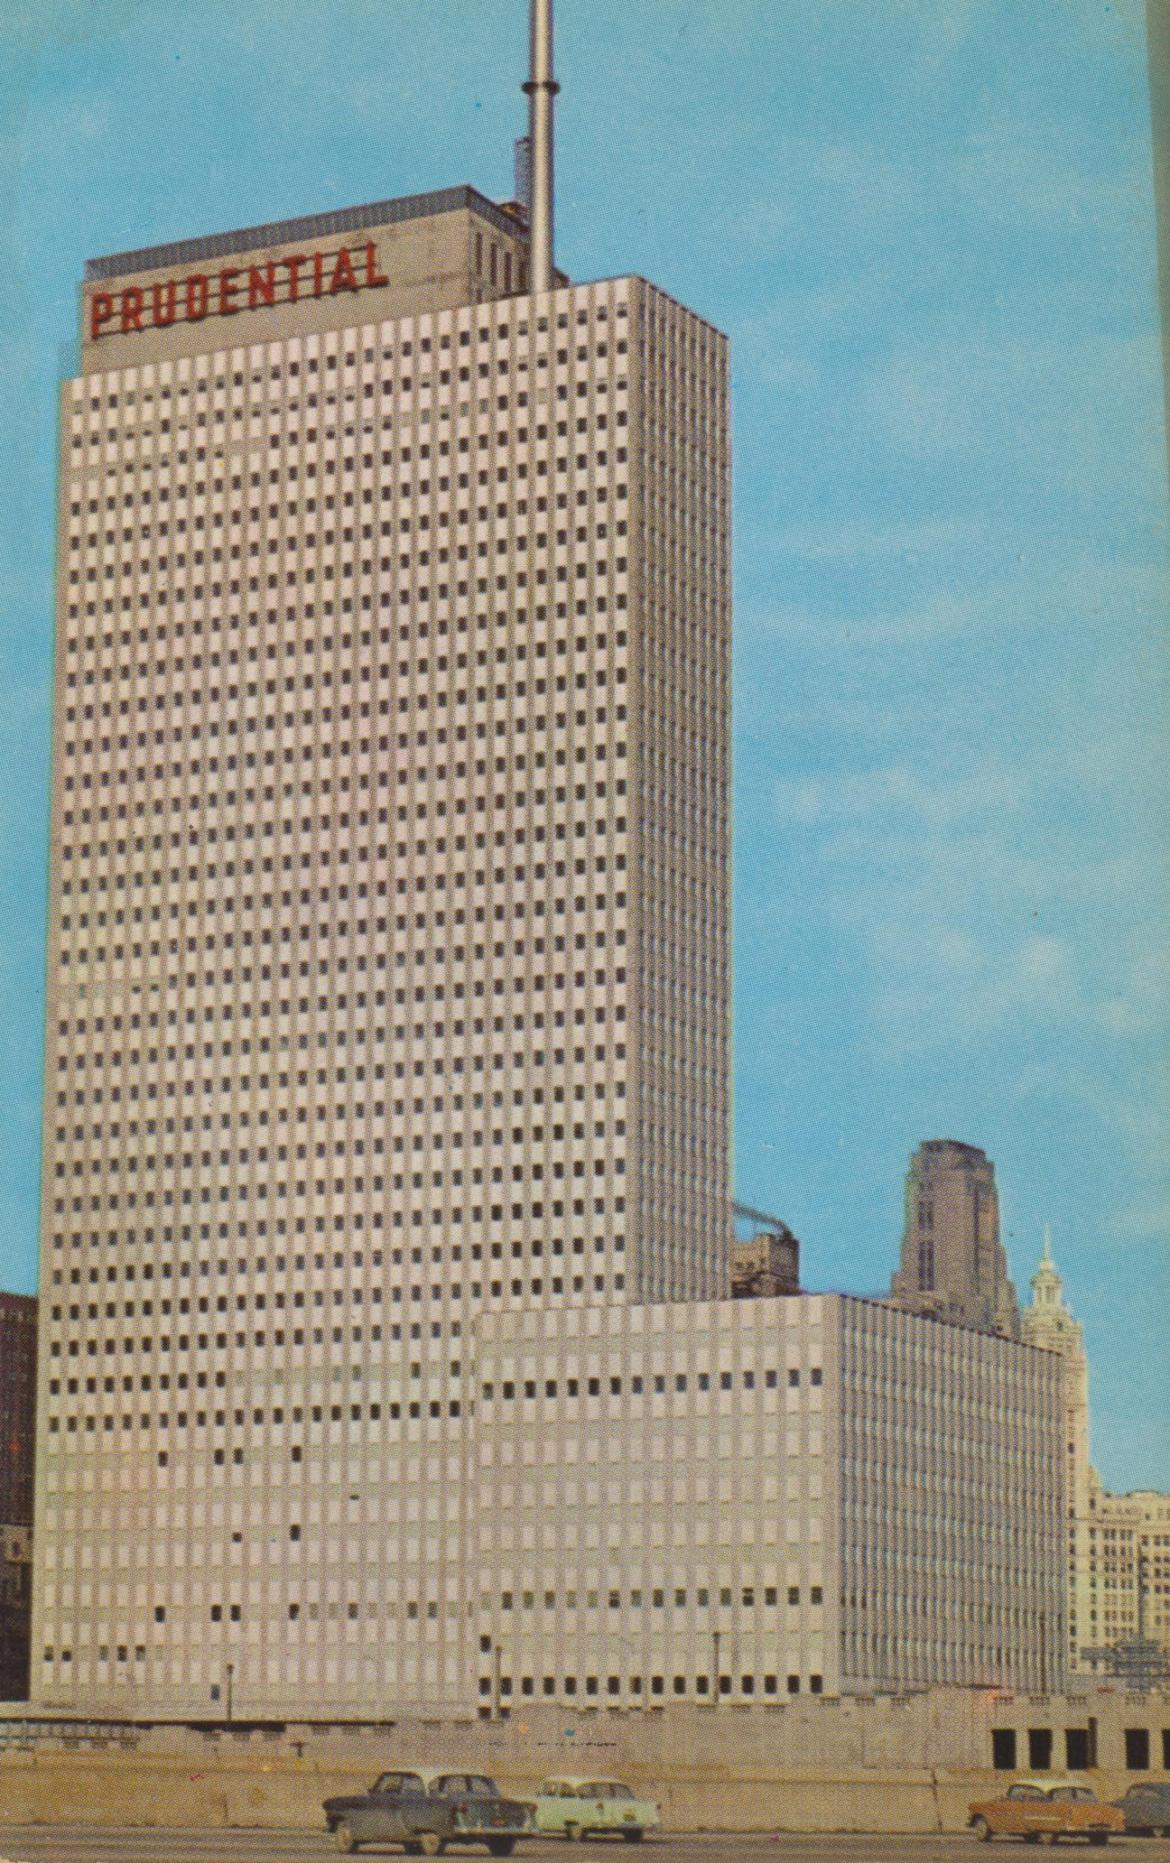 The Prudential Building  – Chicago, Illinois